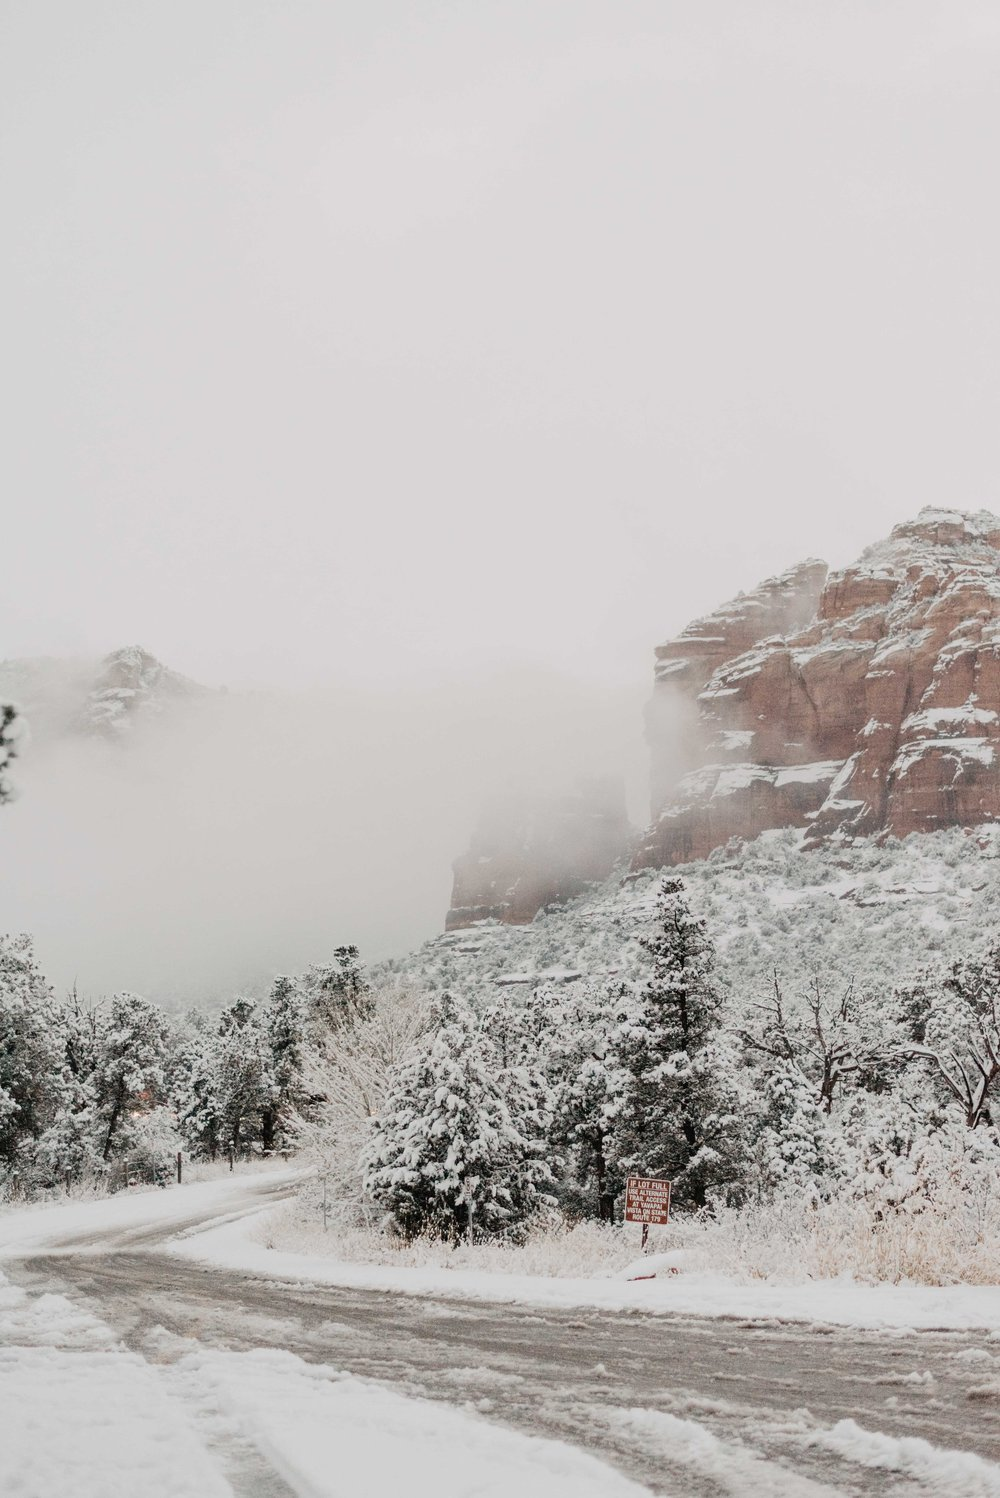 Snow in Sedona Arizona - sedona elopement packages - sedona elopement photographer